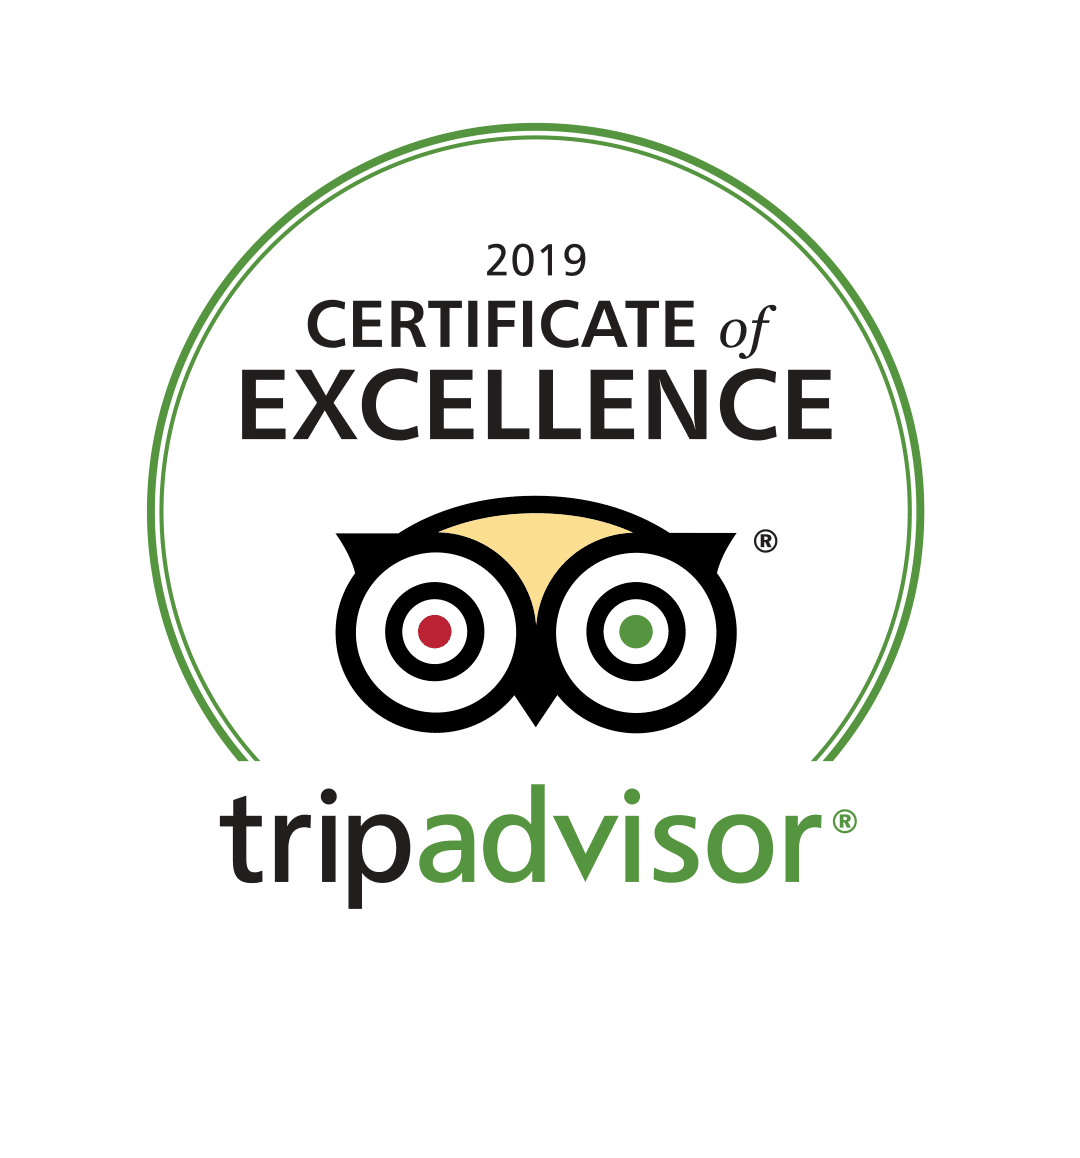 TripAdvisor: 2019 Certificate of Excellence